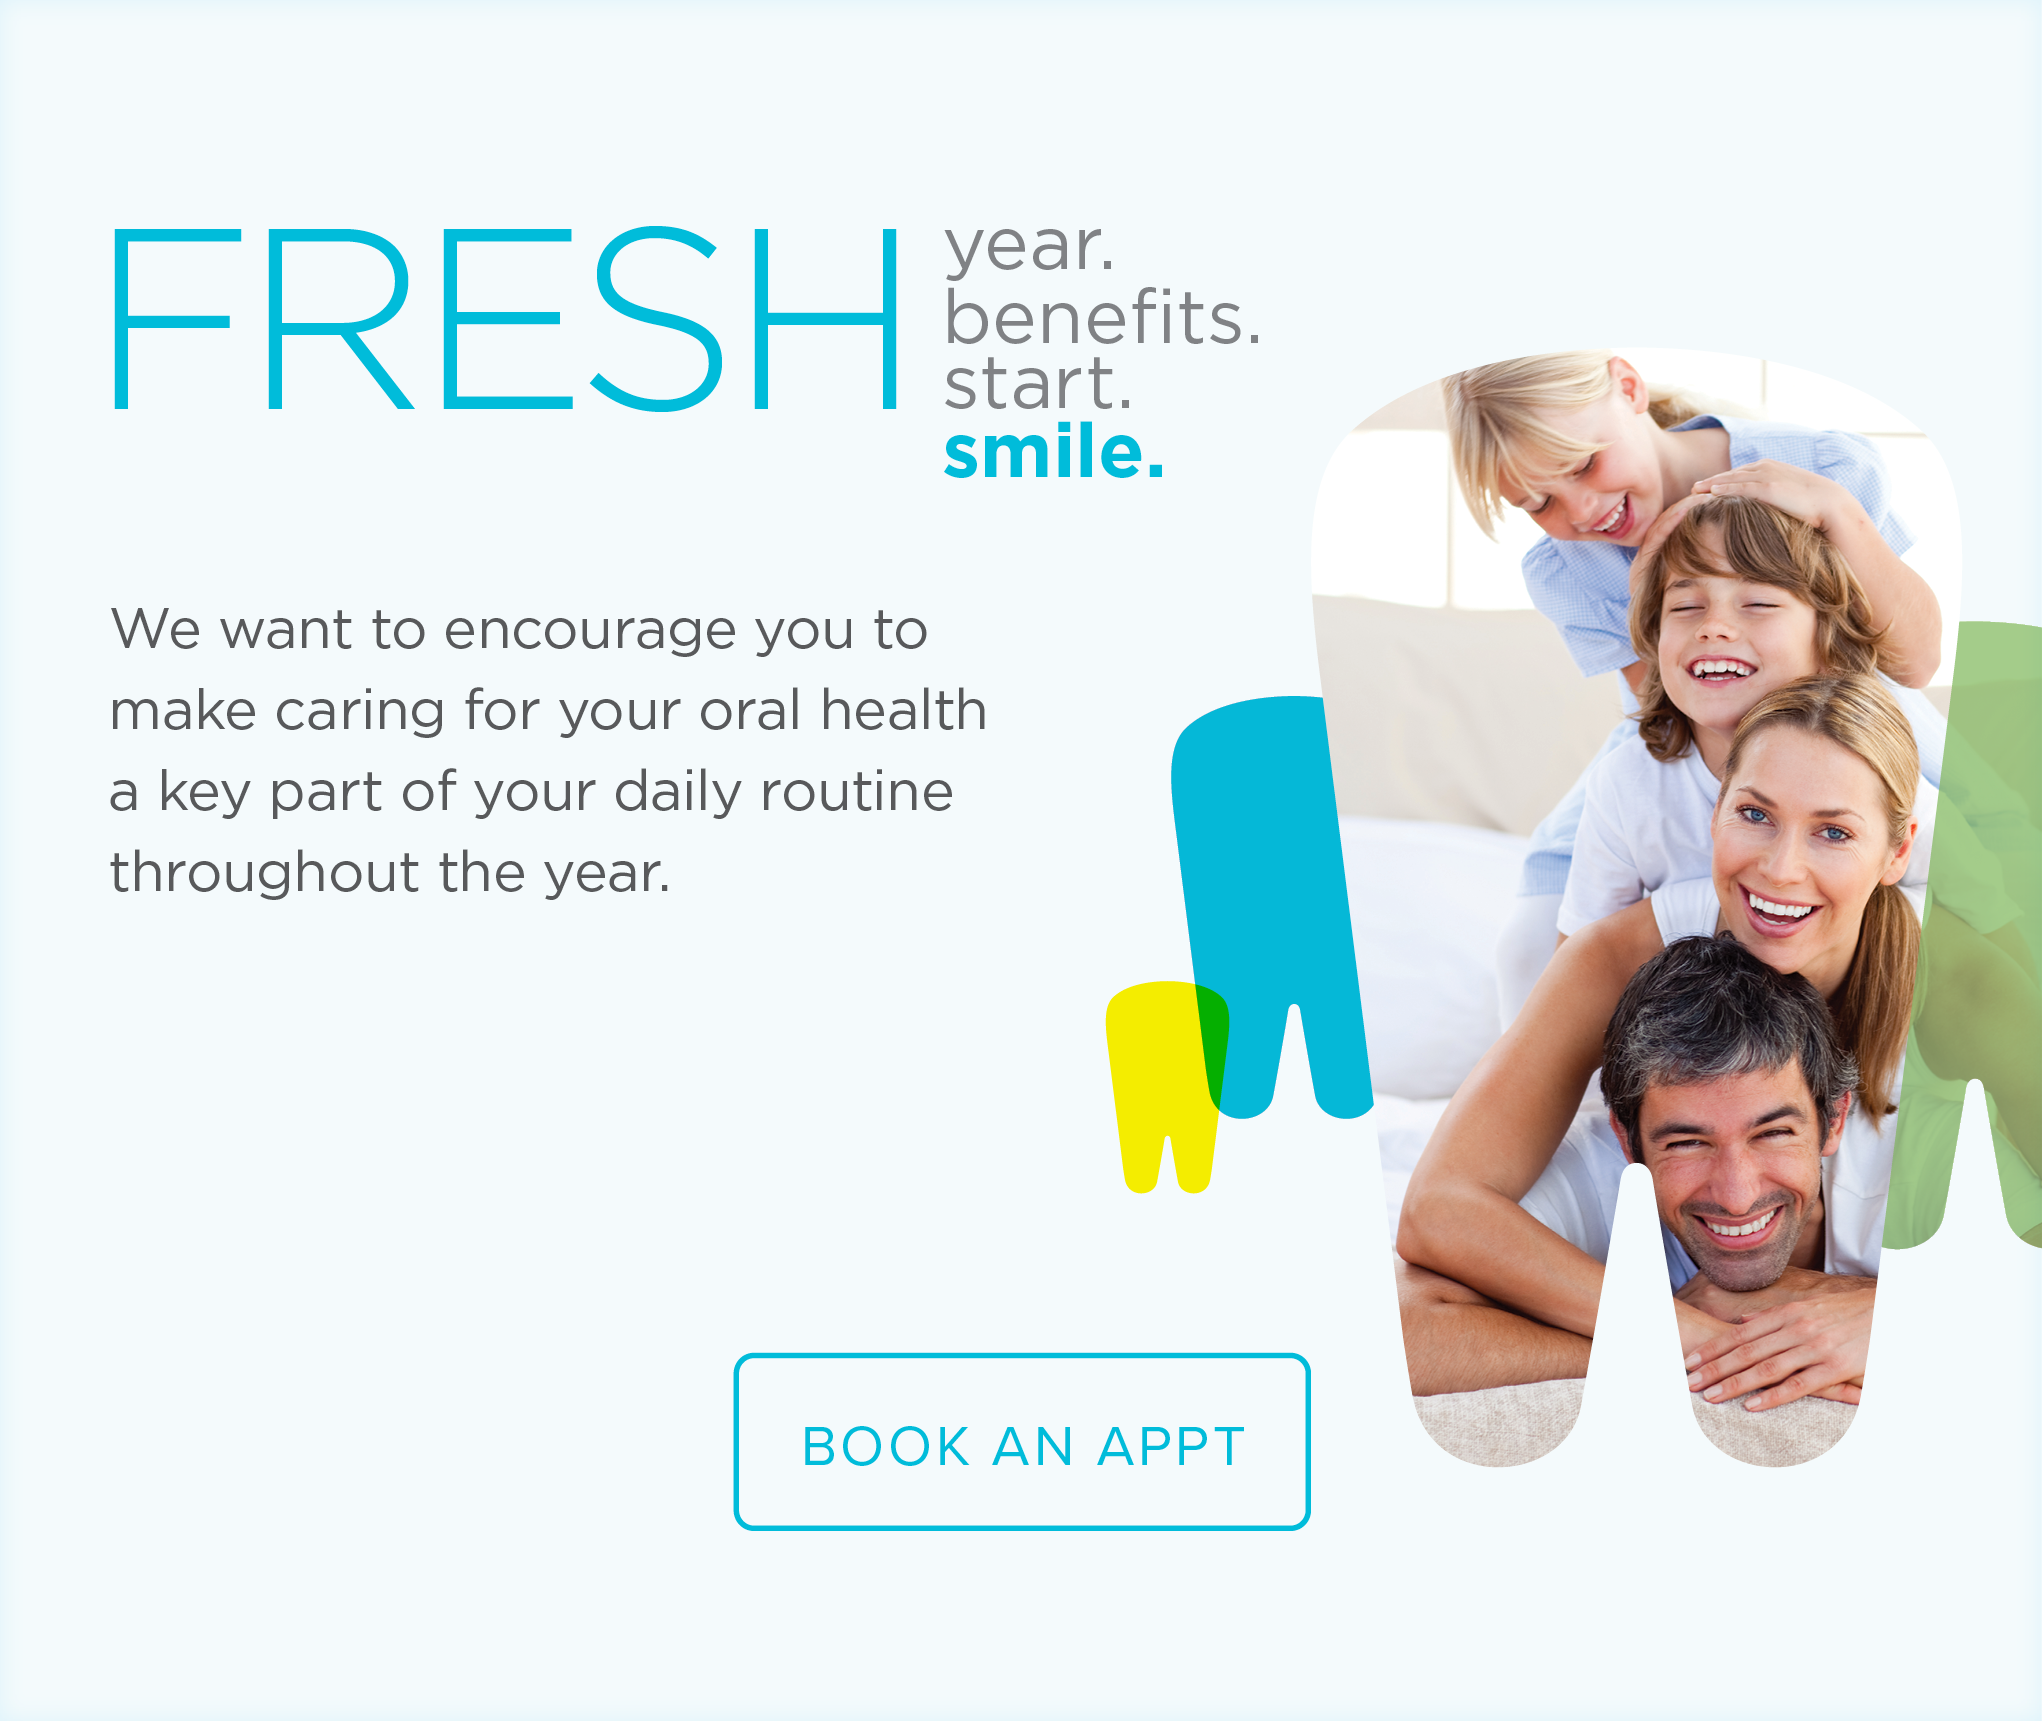 Redlands Dental Group and Orthodontics - Make the Most of Your Benefits